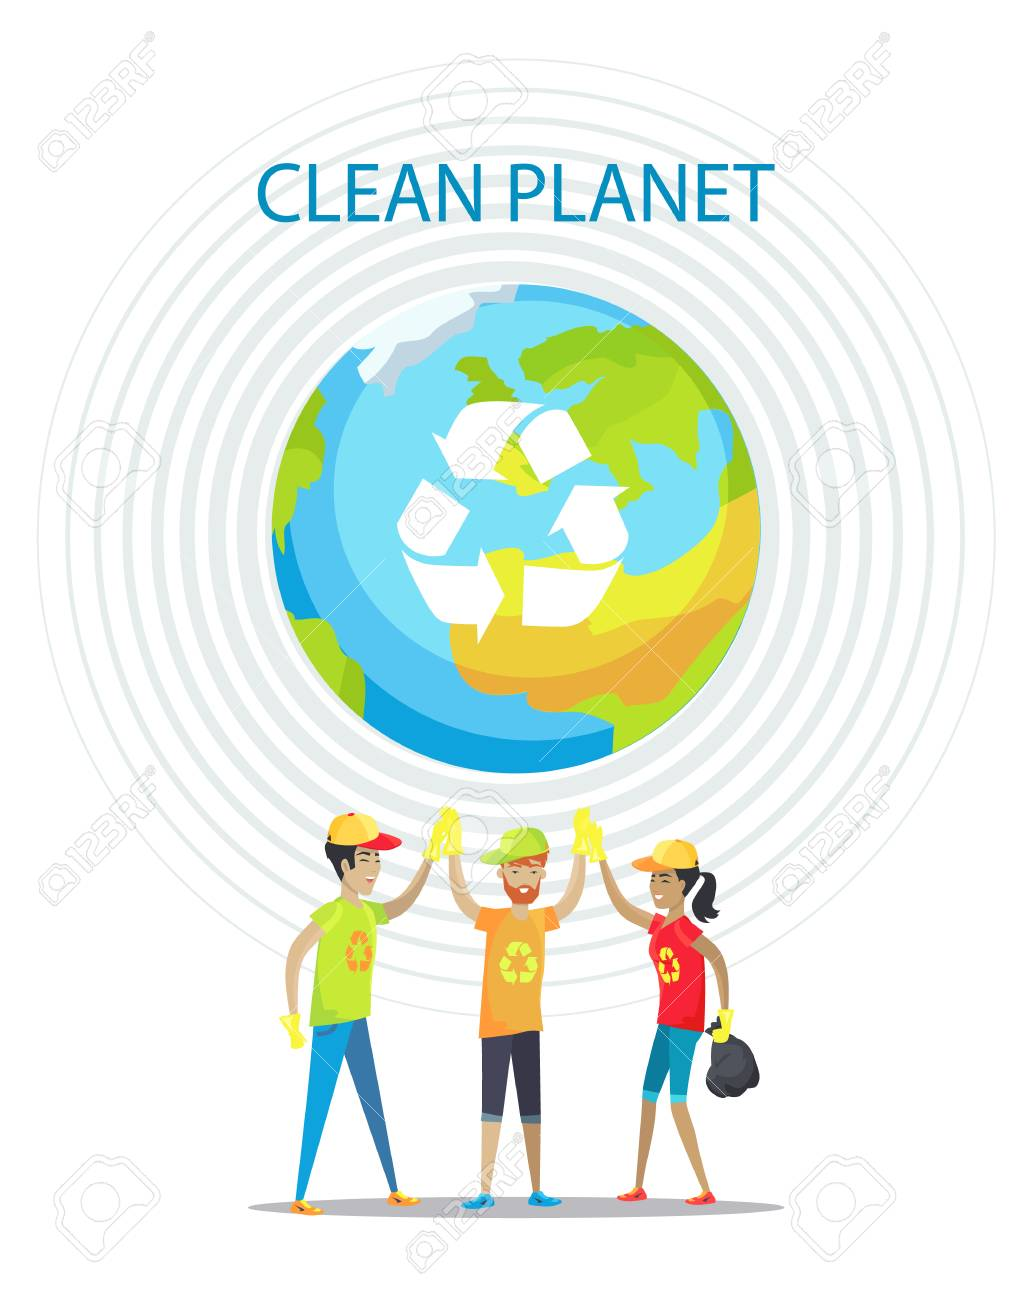 Clean planet motivation poster on white backdrop, isolated vector illustration, Earth image with recycling symbol, circles set and cheerful people - 109016016